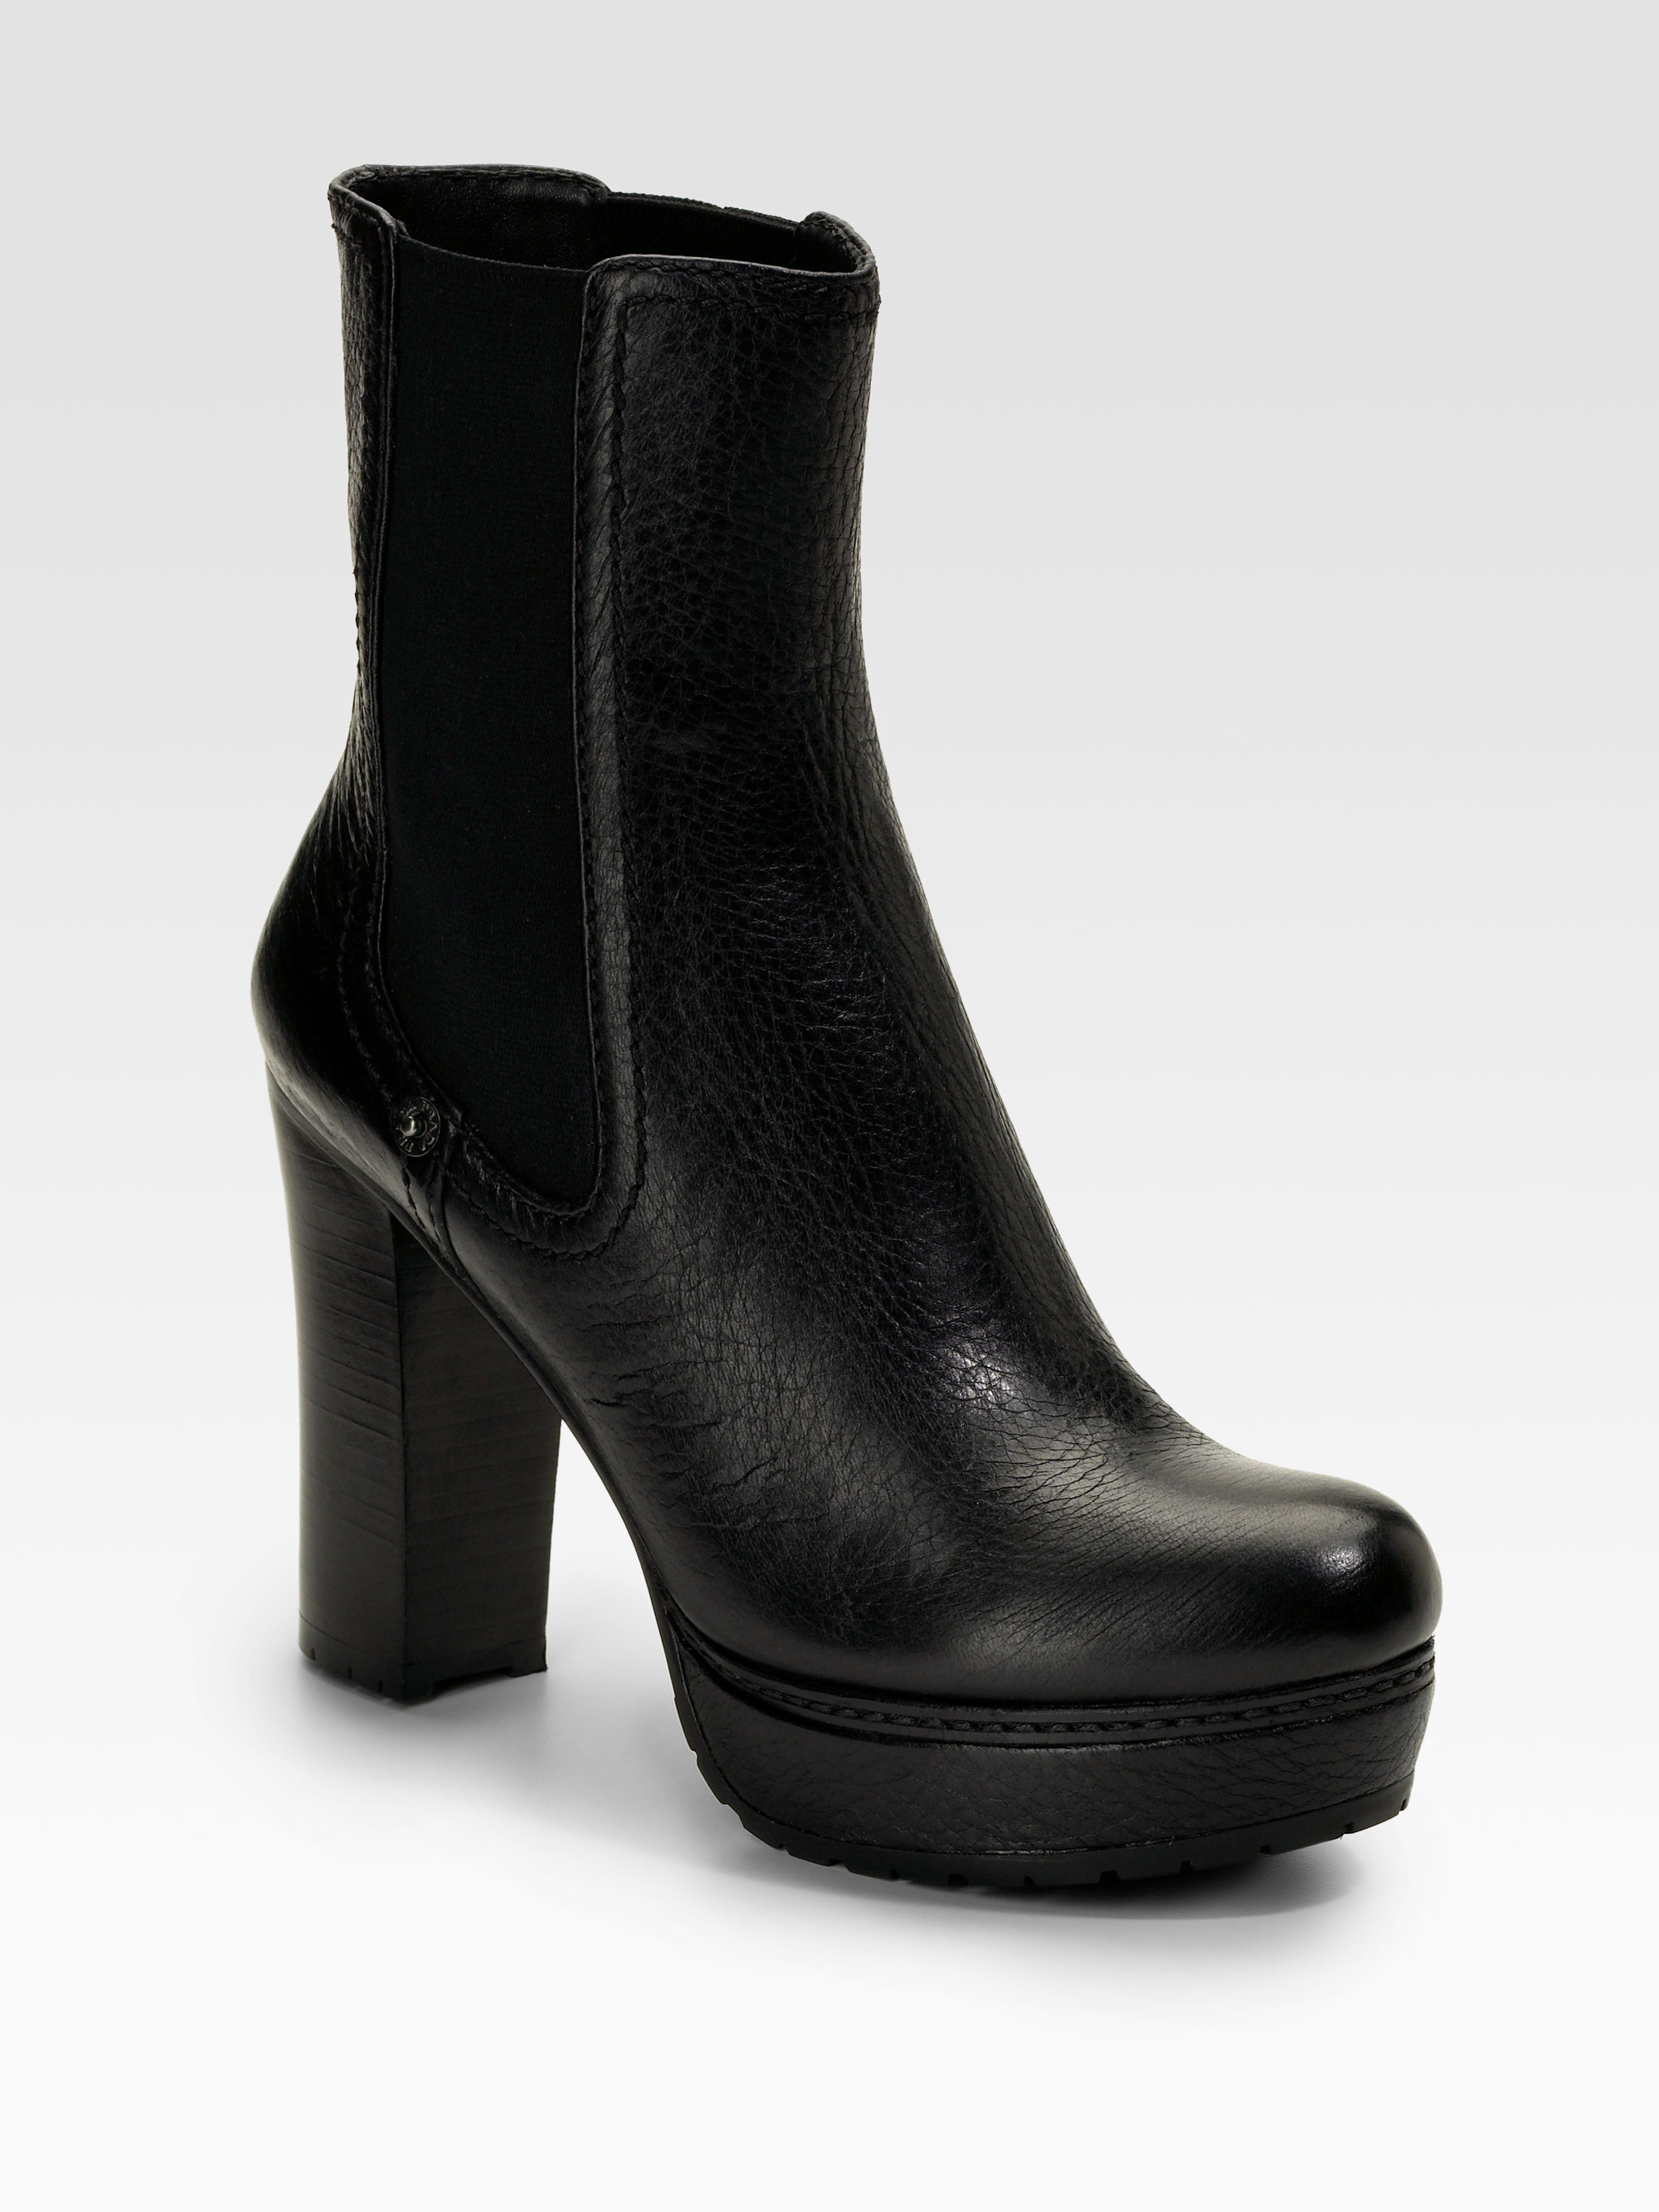 dfc42d630b8 Prada Black Boots. Prada Studded Leather Ankle Boots in Black